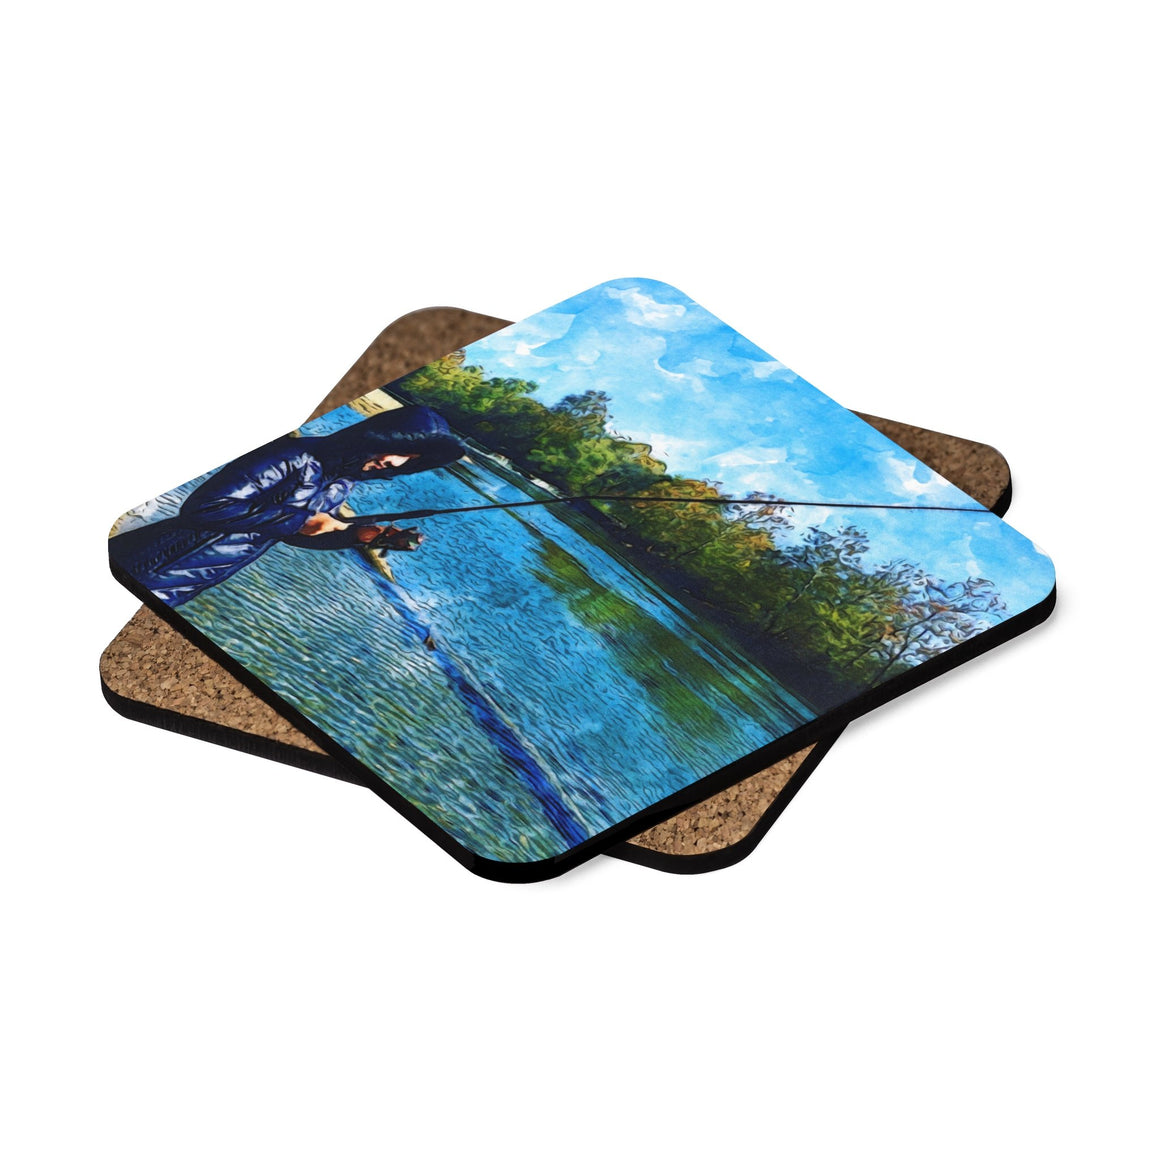 Levi Thang Fishing Design 23 Square Hardboard Coaster Set - 4pcs - I Am A Dreamer